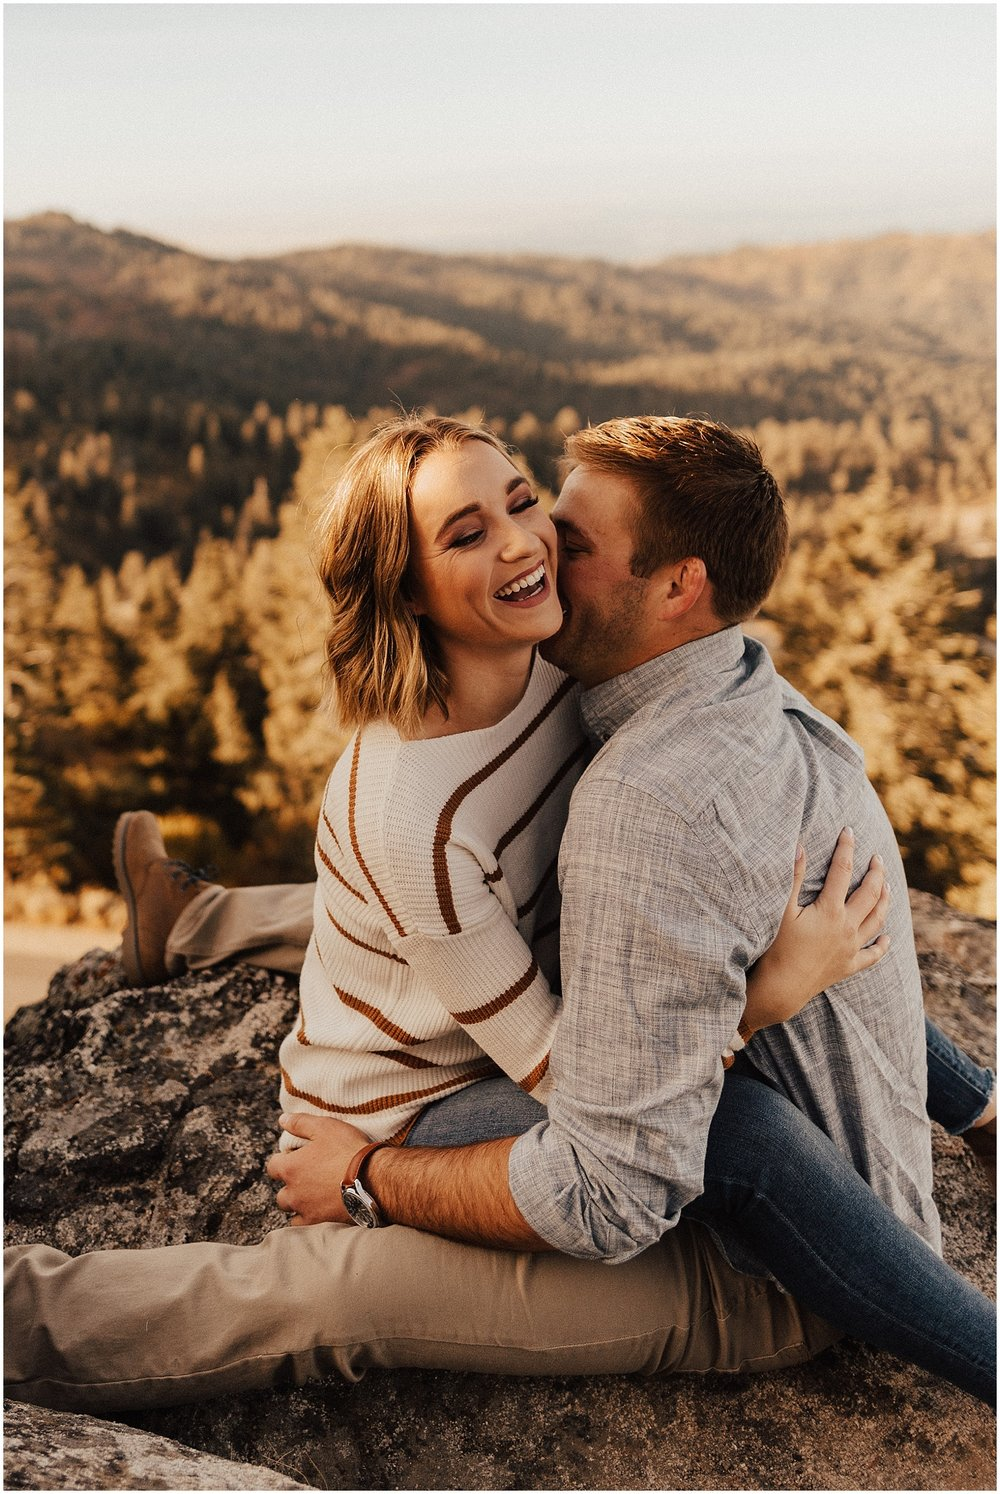 sunrise-mountain-engagement-session-boise-idaho11.jpg